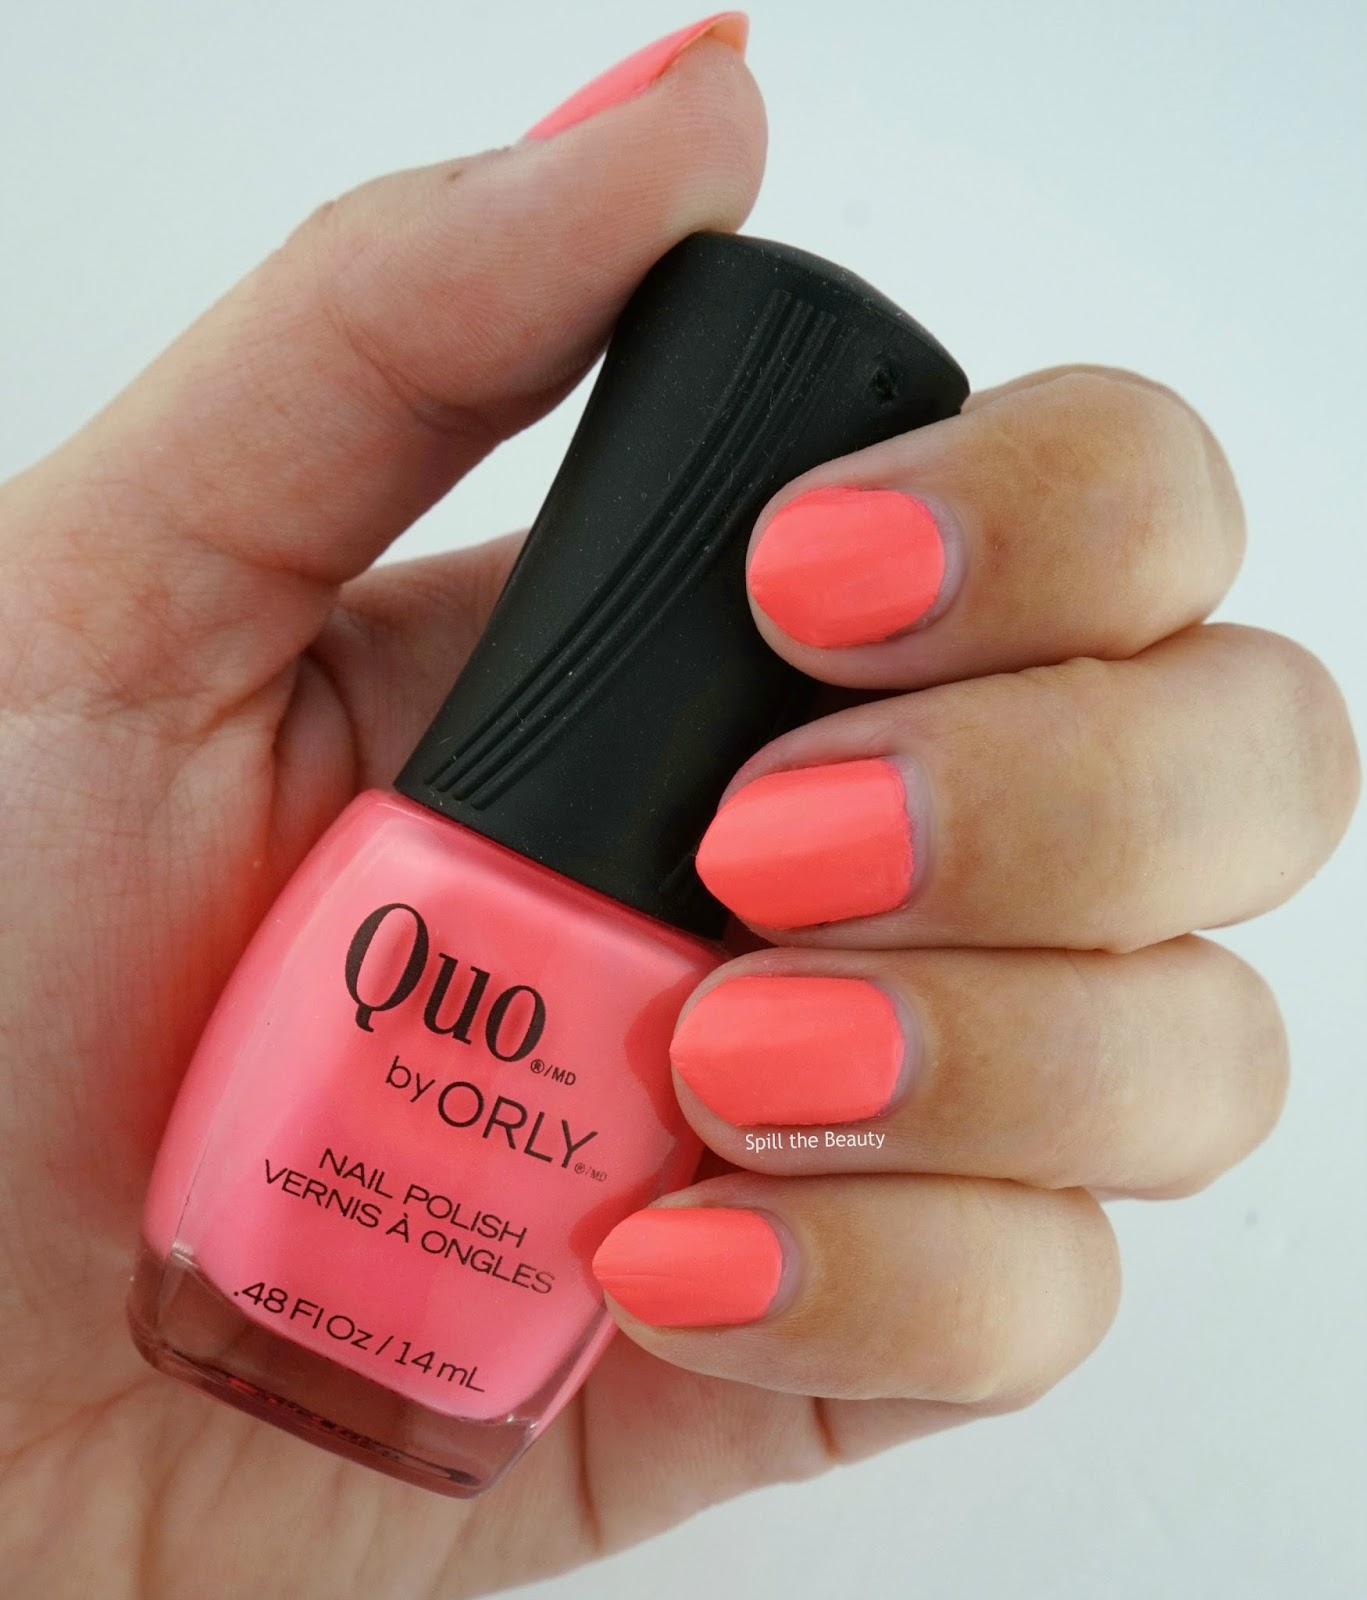 quo by orly summer 2016 pink bikini swatch nail polish